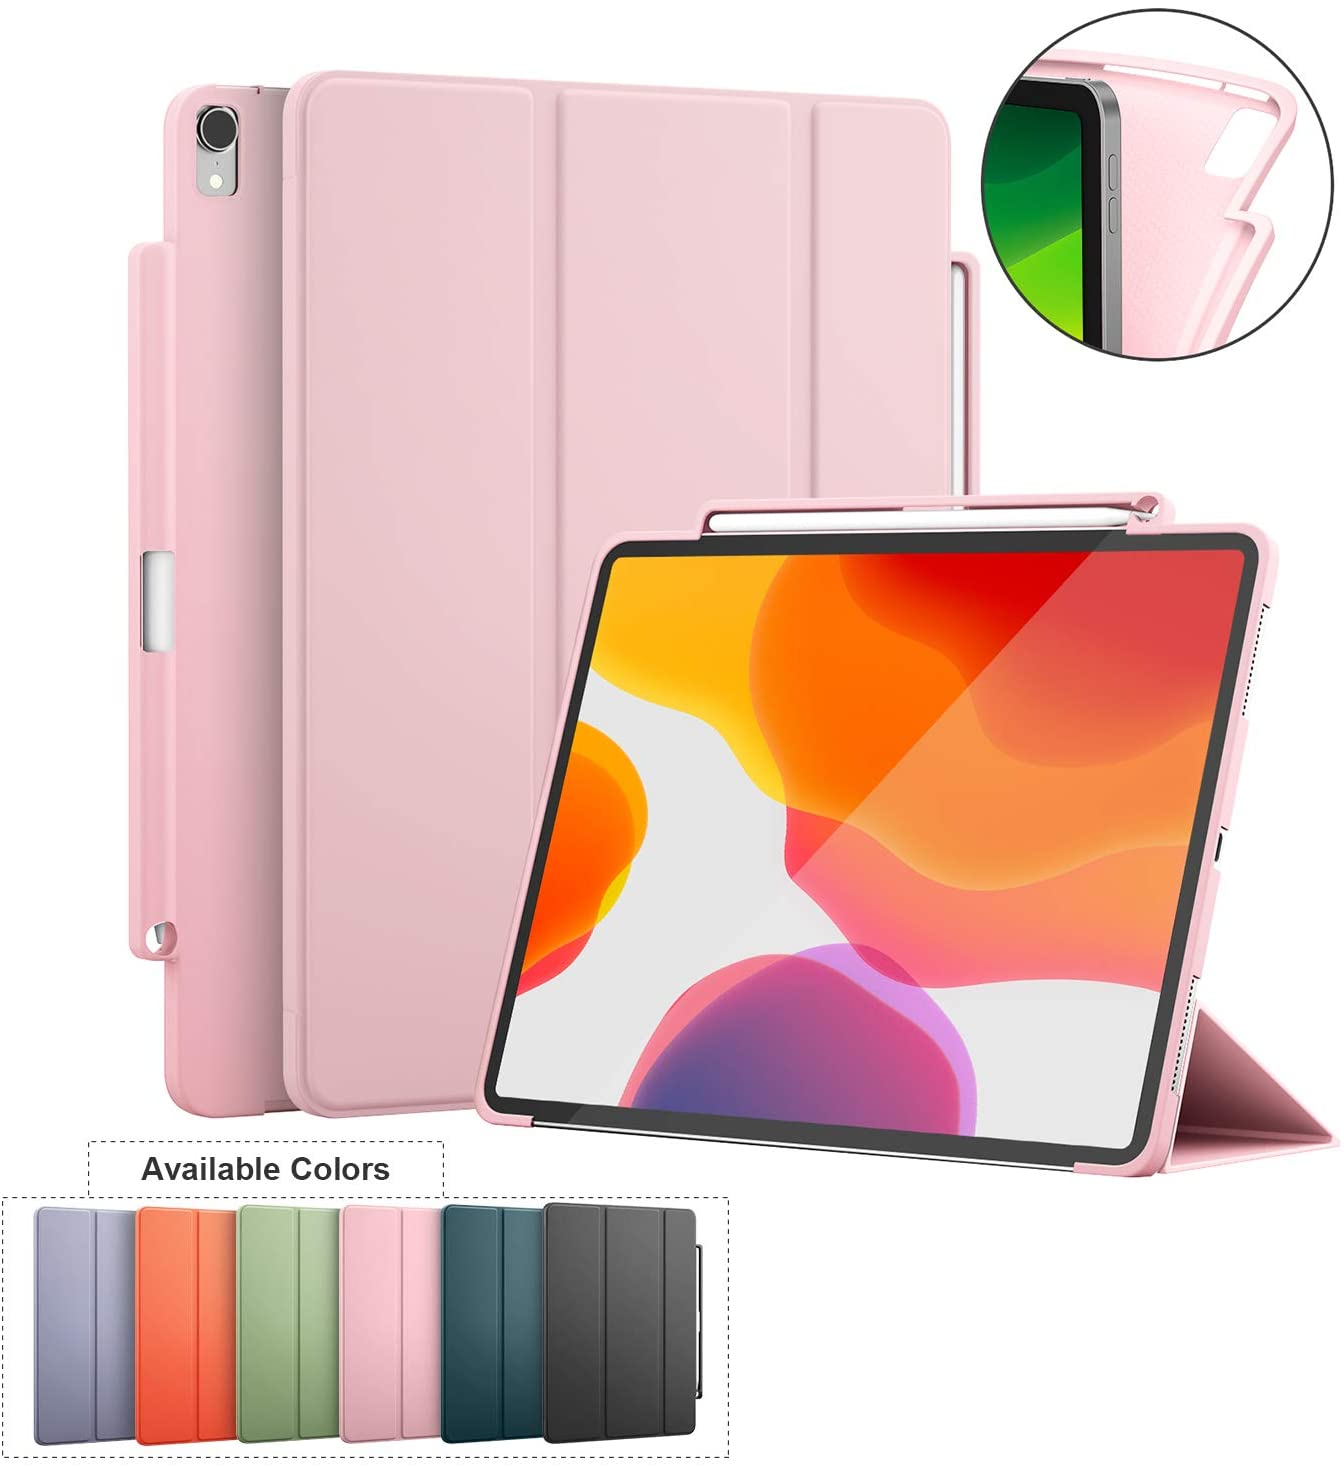 iPad Case PRO 11-Inch 2018 with Pen Holder Suppprt Magically Attach&Wirelessly Charge,Magnetic Closure and Auto Sleep/Wake,Two Easy Viewing Angles,Soft TPU Back Shell for 2018 Pro 11 (Pink)